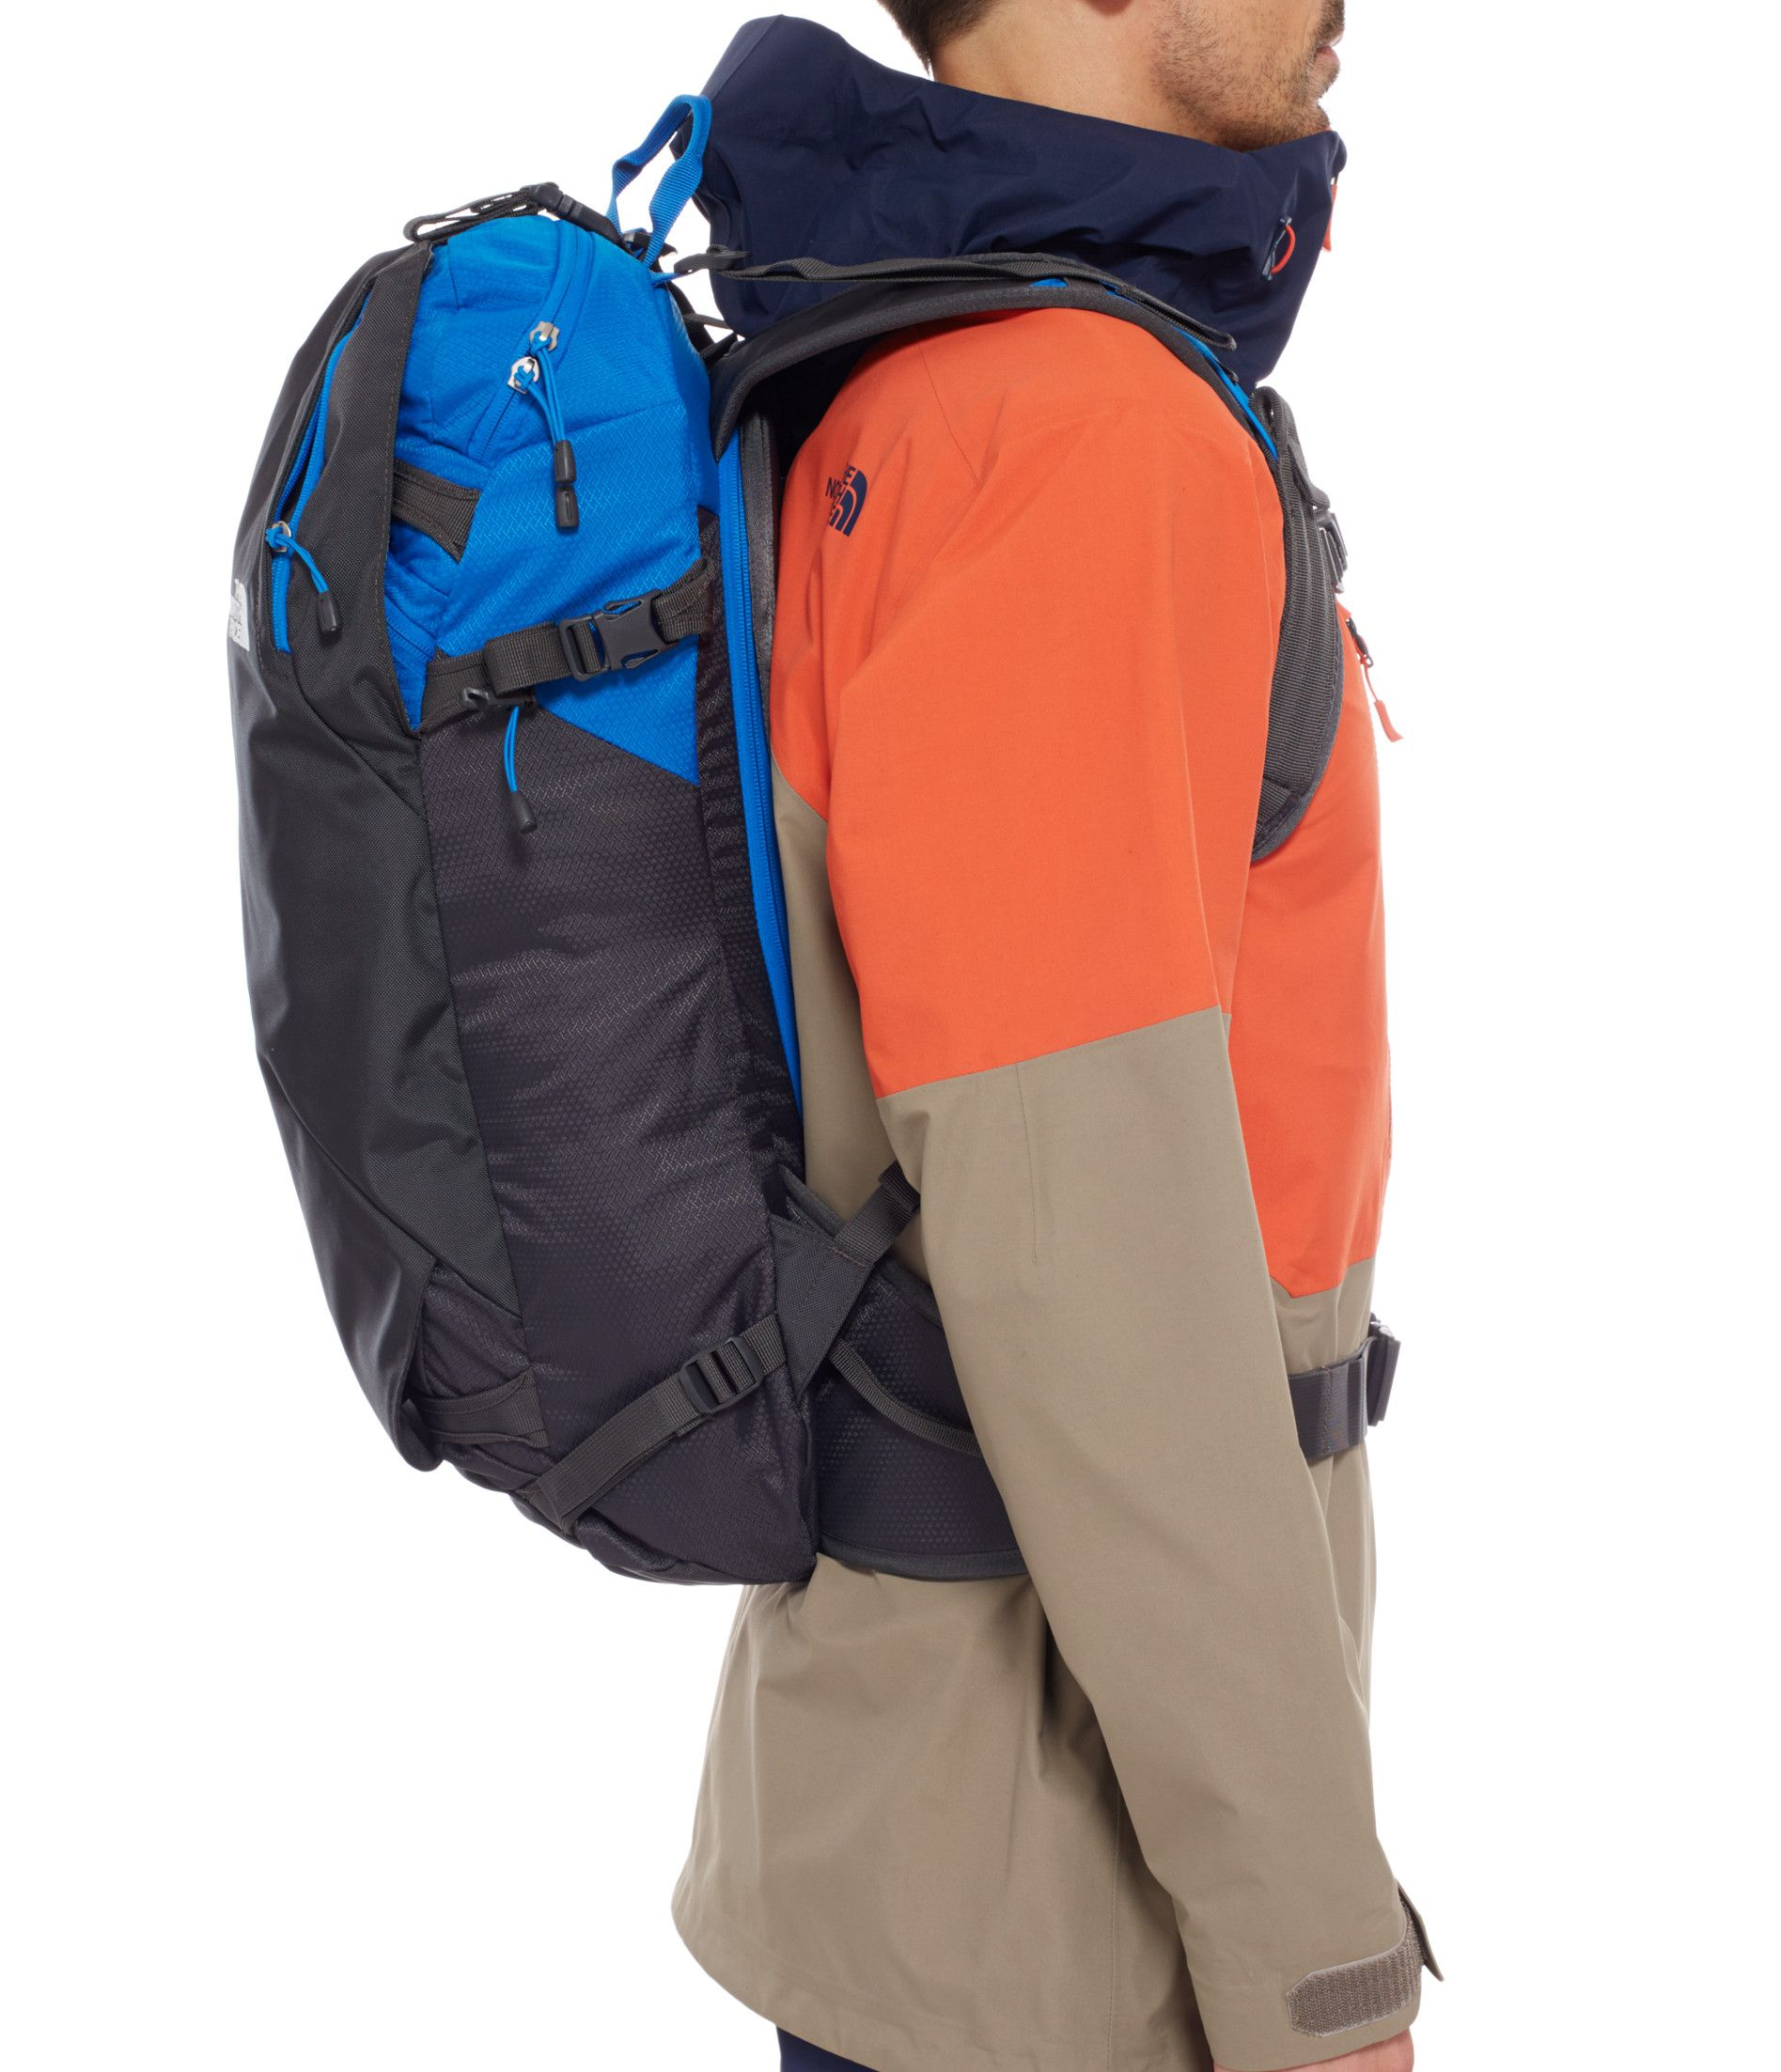 937597c67 Image result for snomad 34 | HAULIN' | Bags, Backpacks, The north face